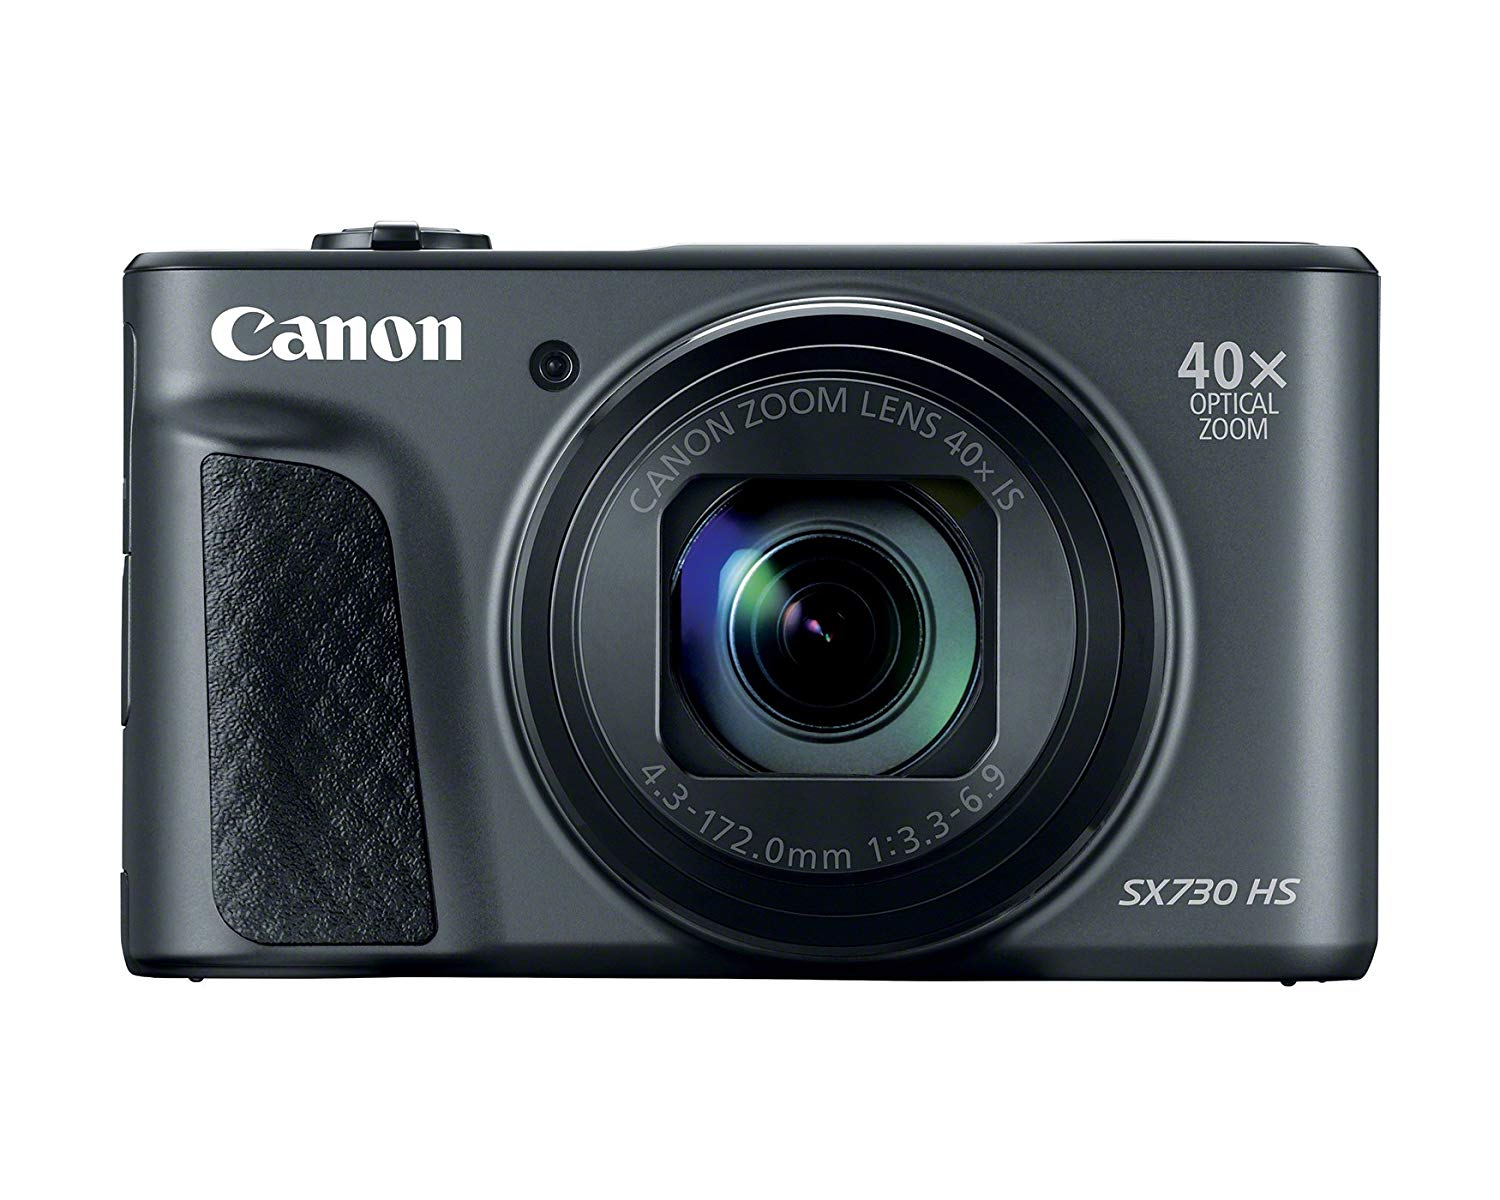 Canon PowerShot SX730 HS, 20.3MP Digital Camera - Black